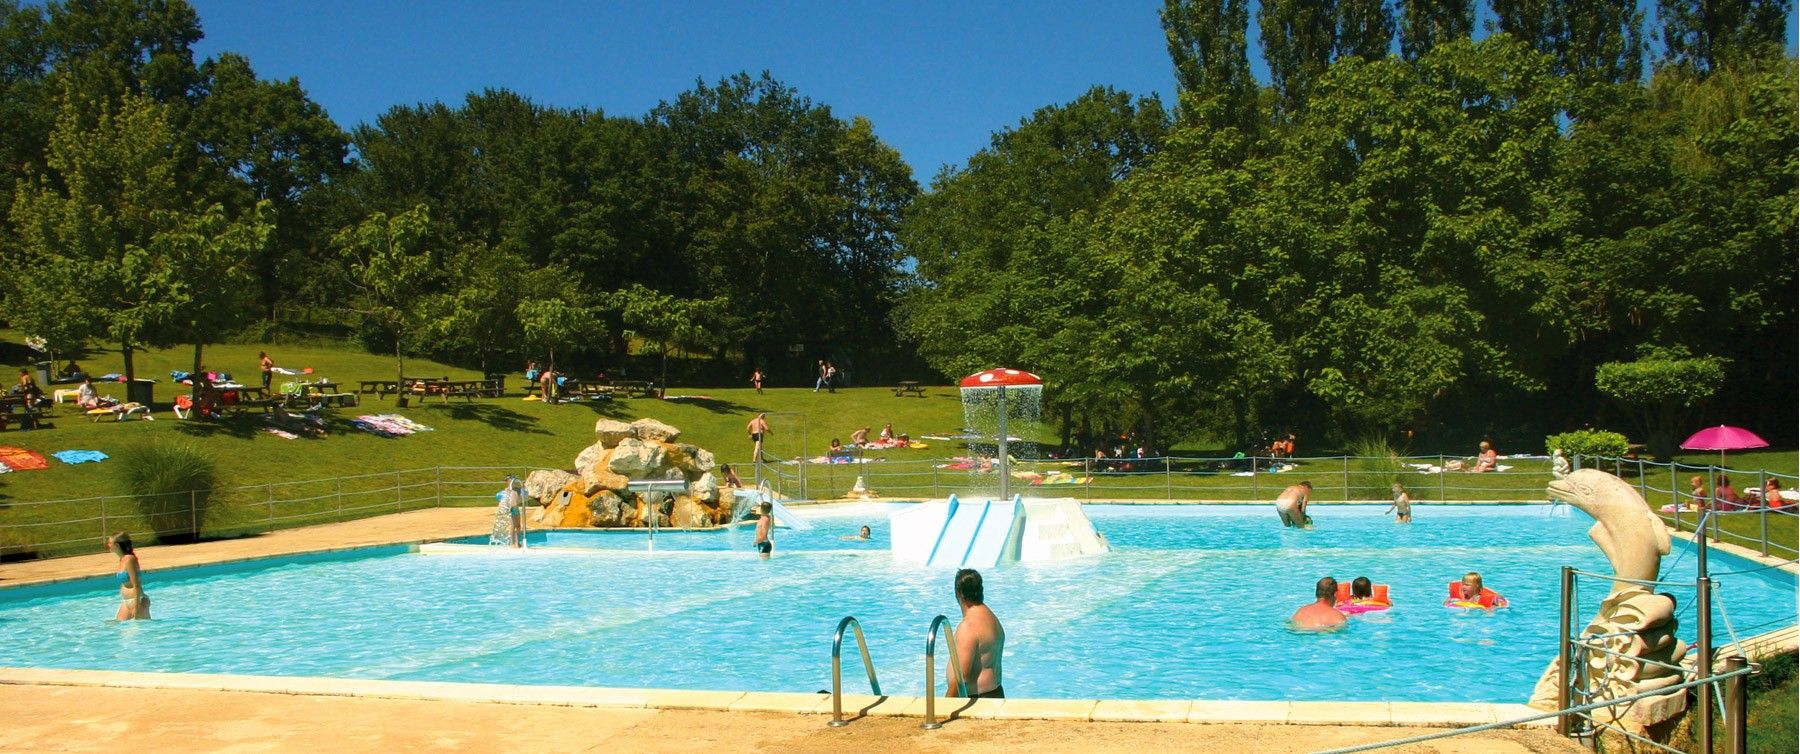 A big paddling pool for childs and adults in Dordogne.